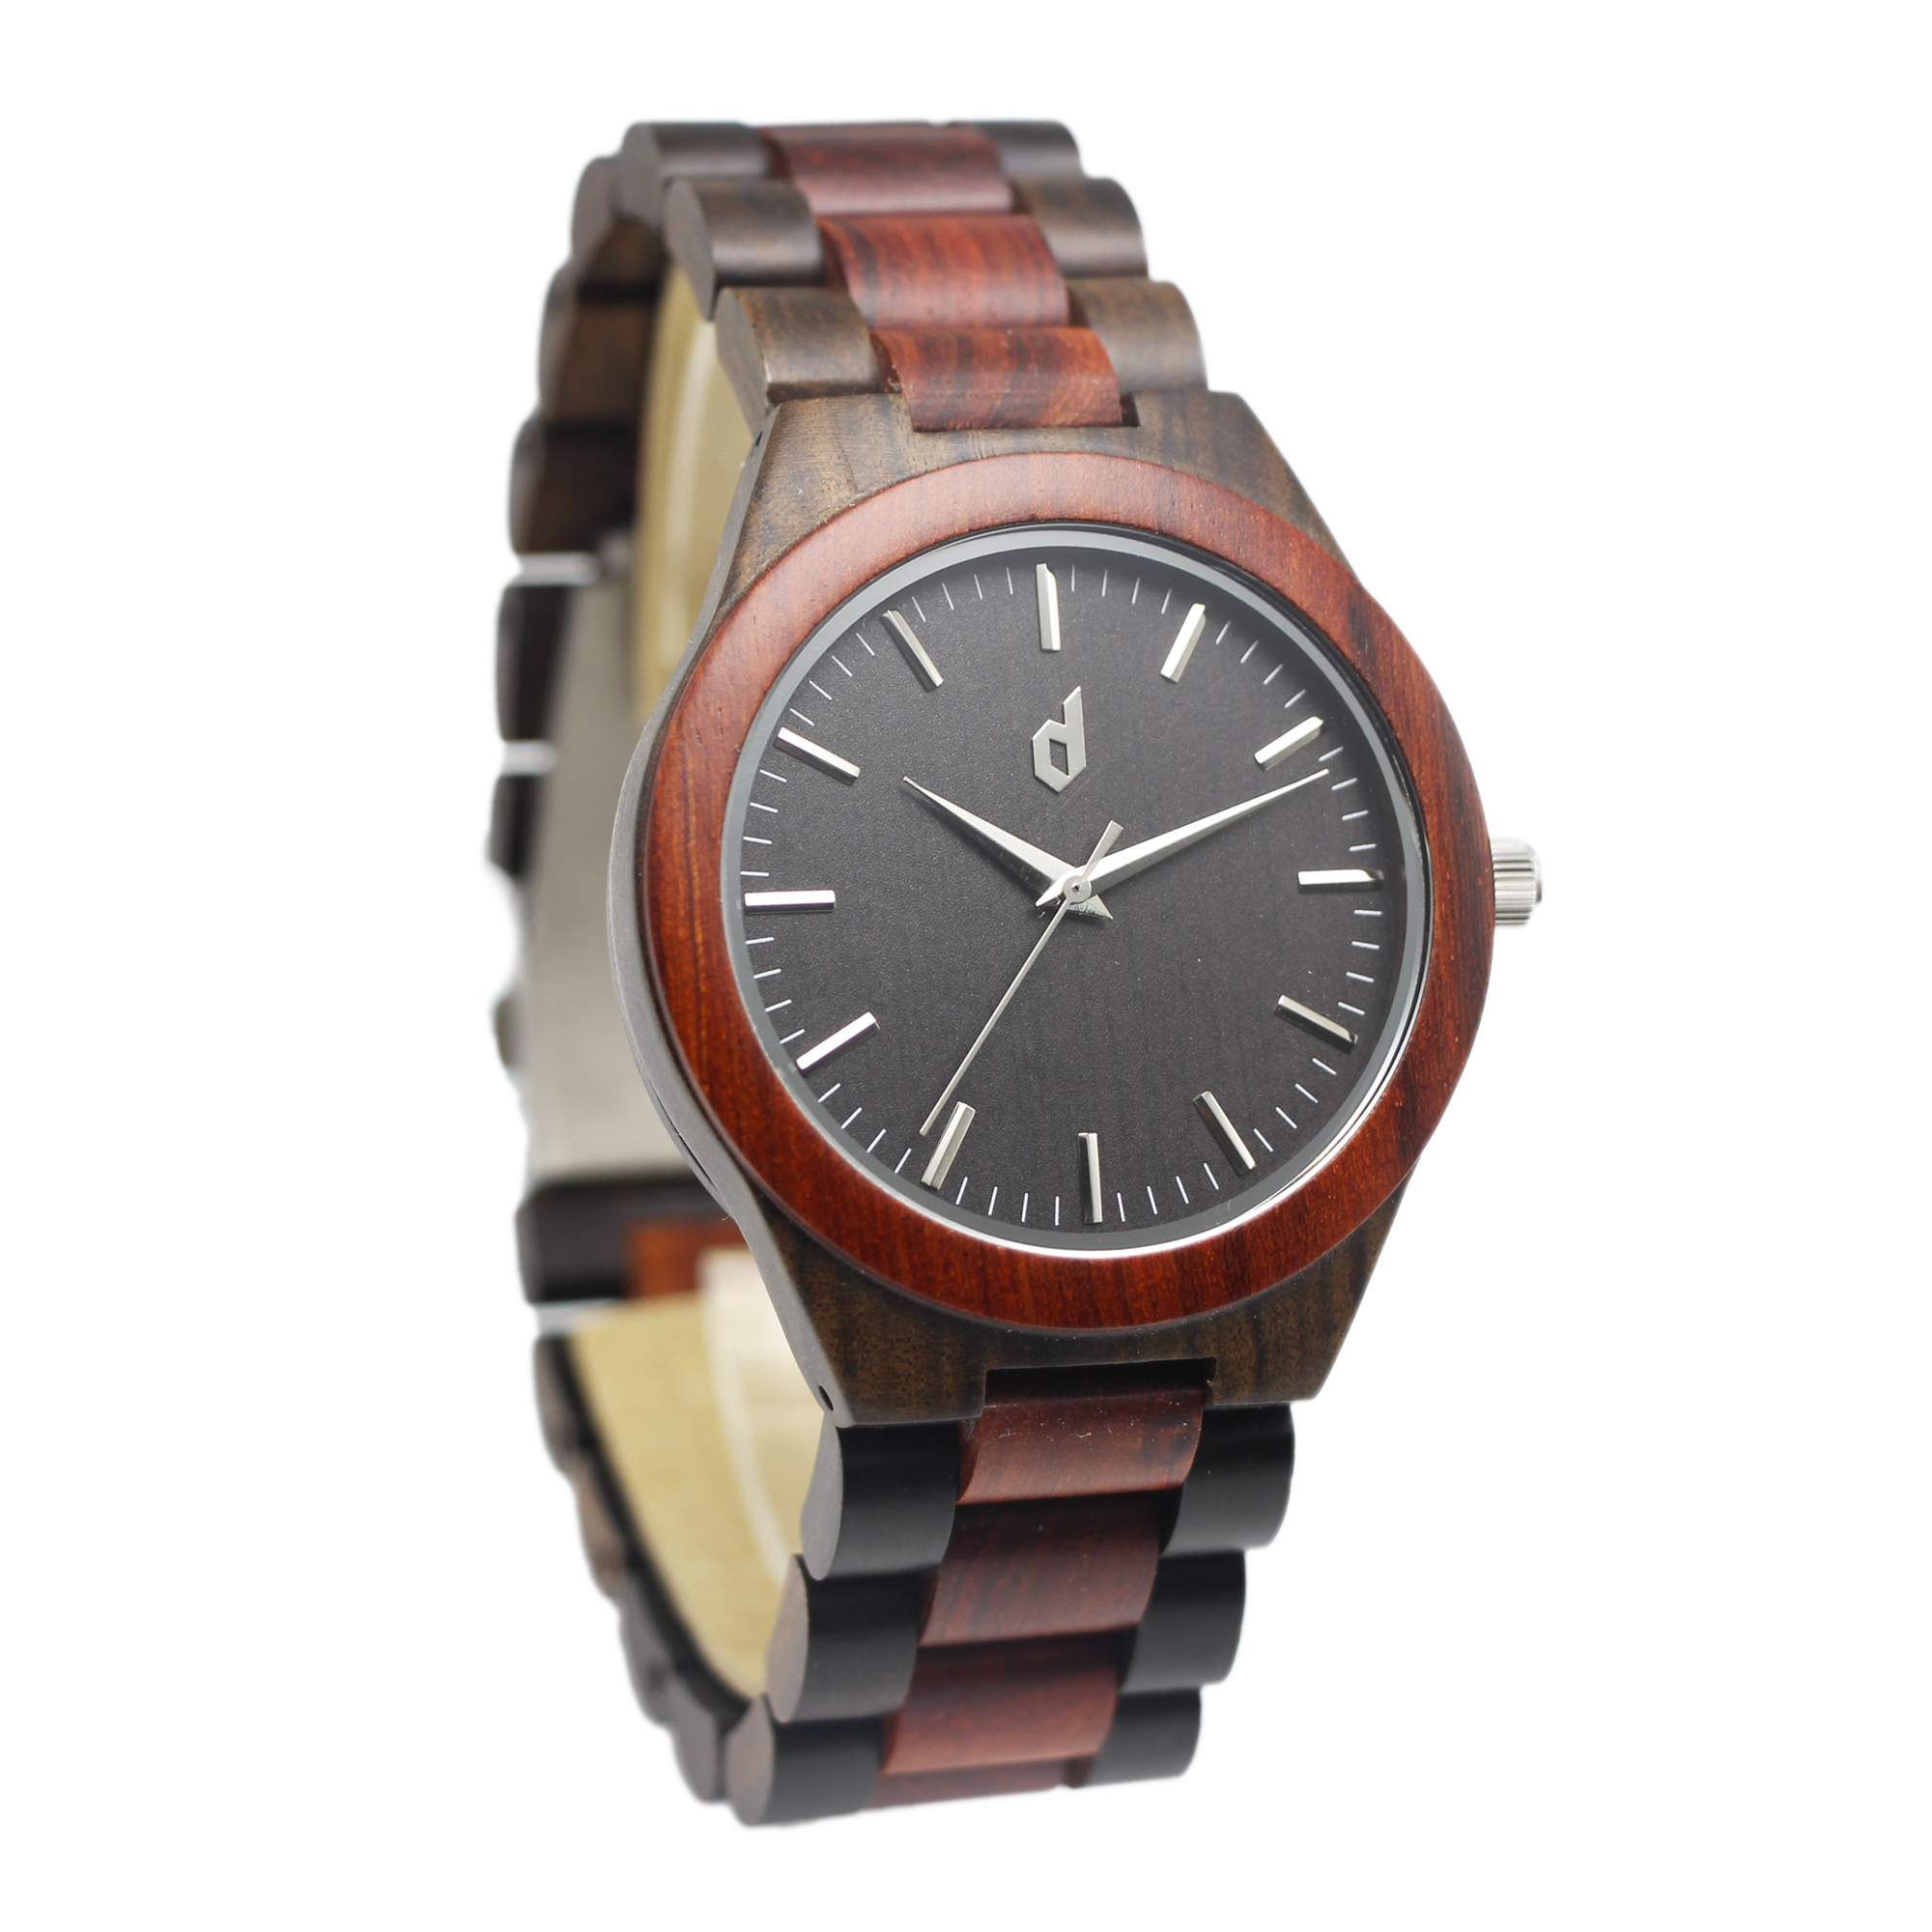 value proposition watches royal watch monochrome nobel review rumoe maroon kickstarter